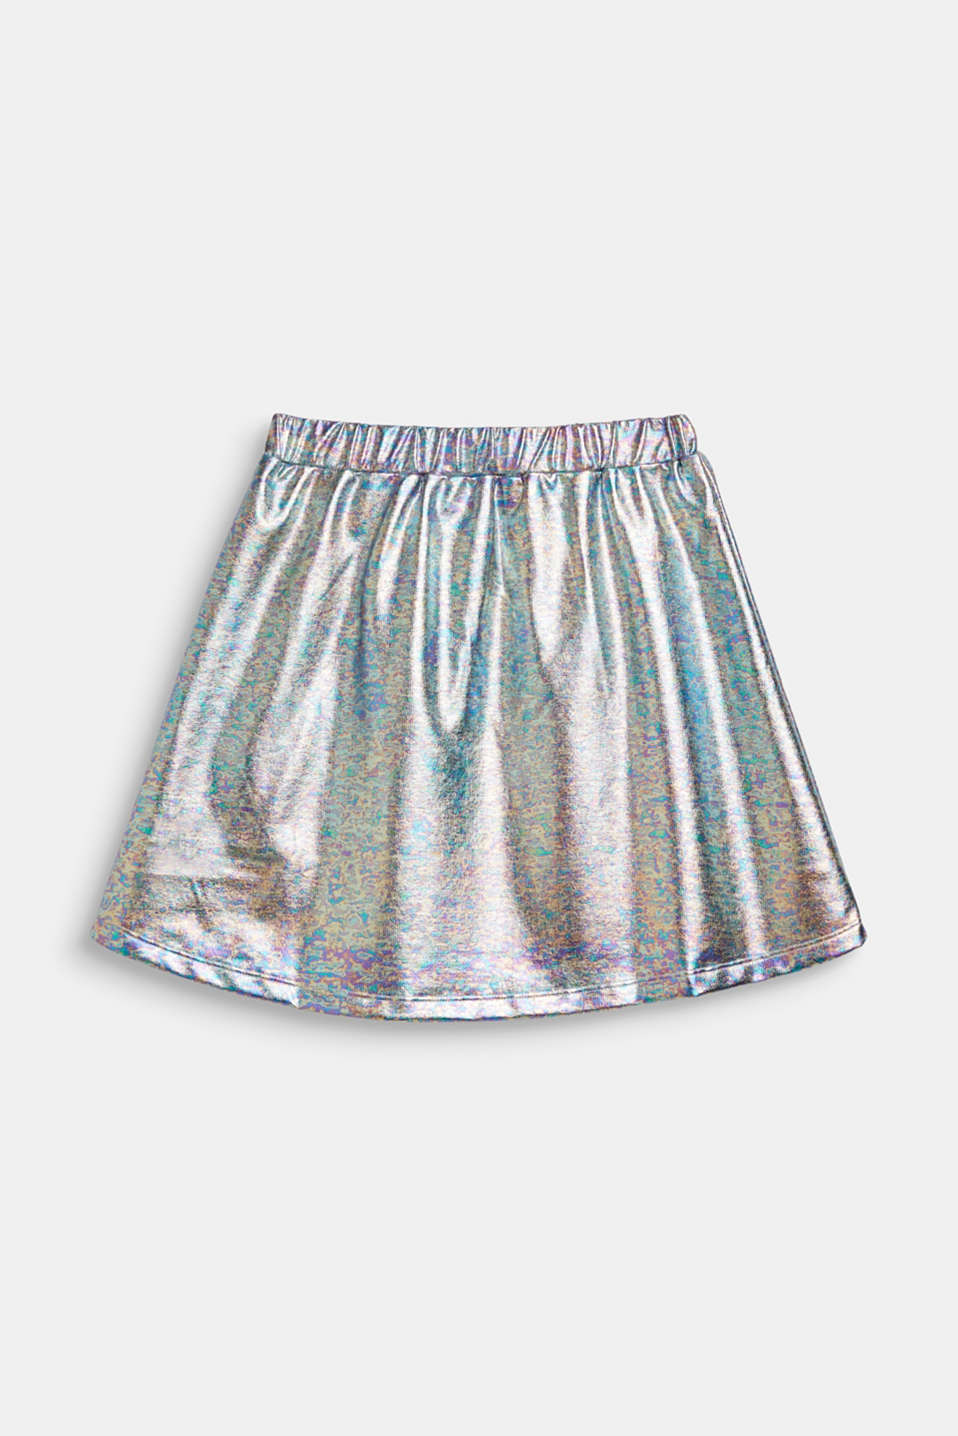 Skirt in an iridescent metallic finish, LCSILVER, detail image number 1